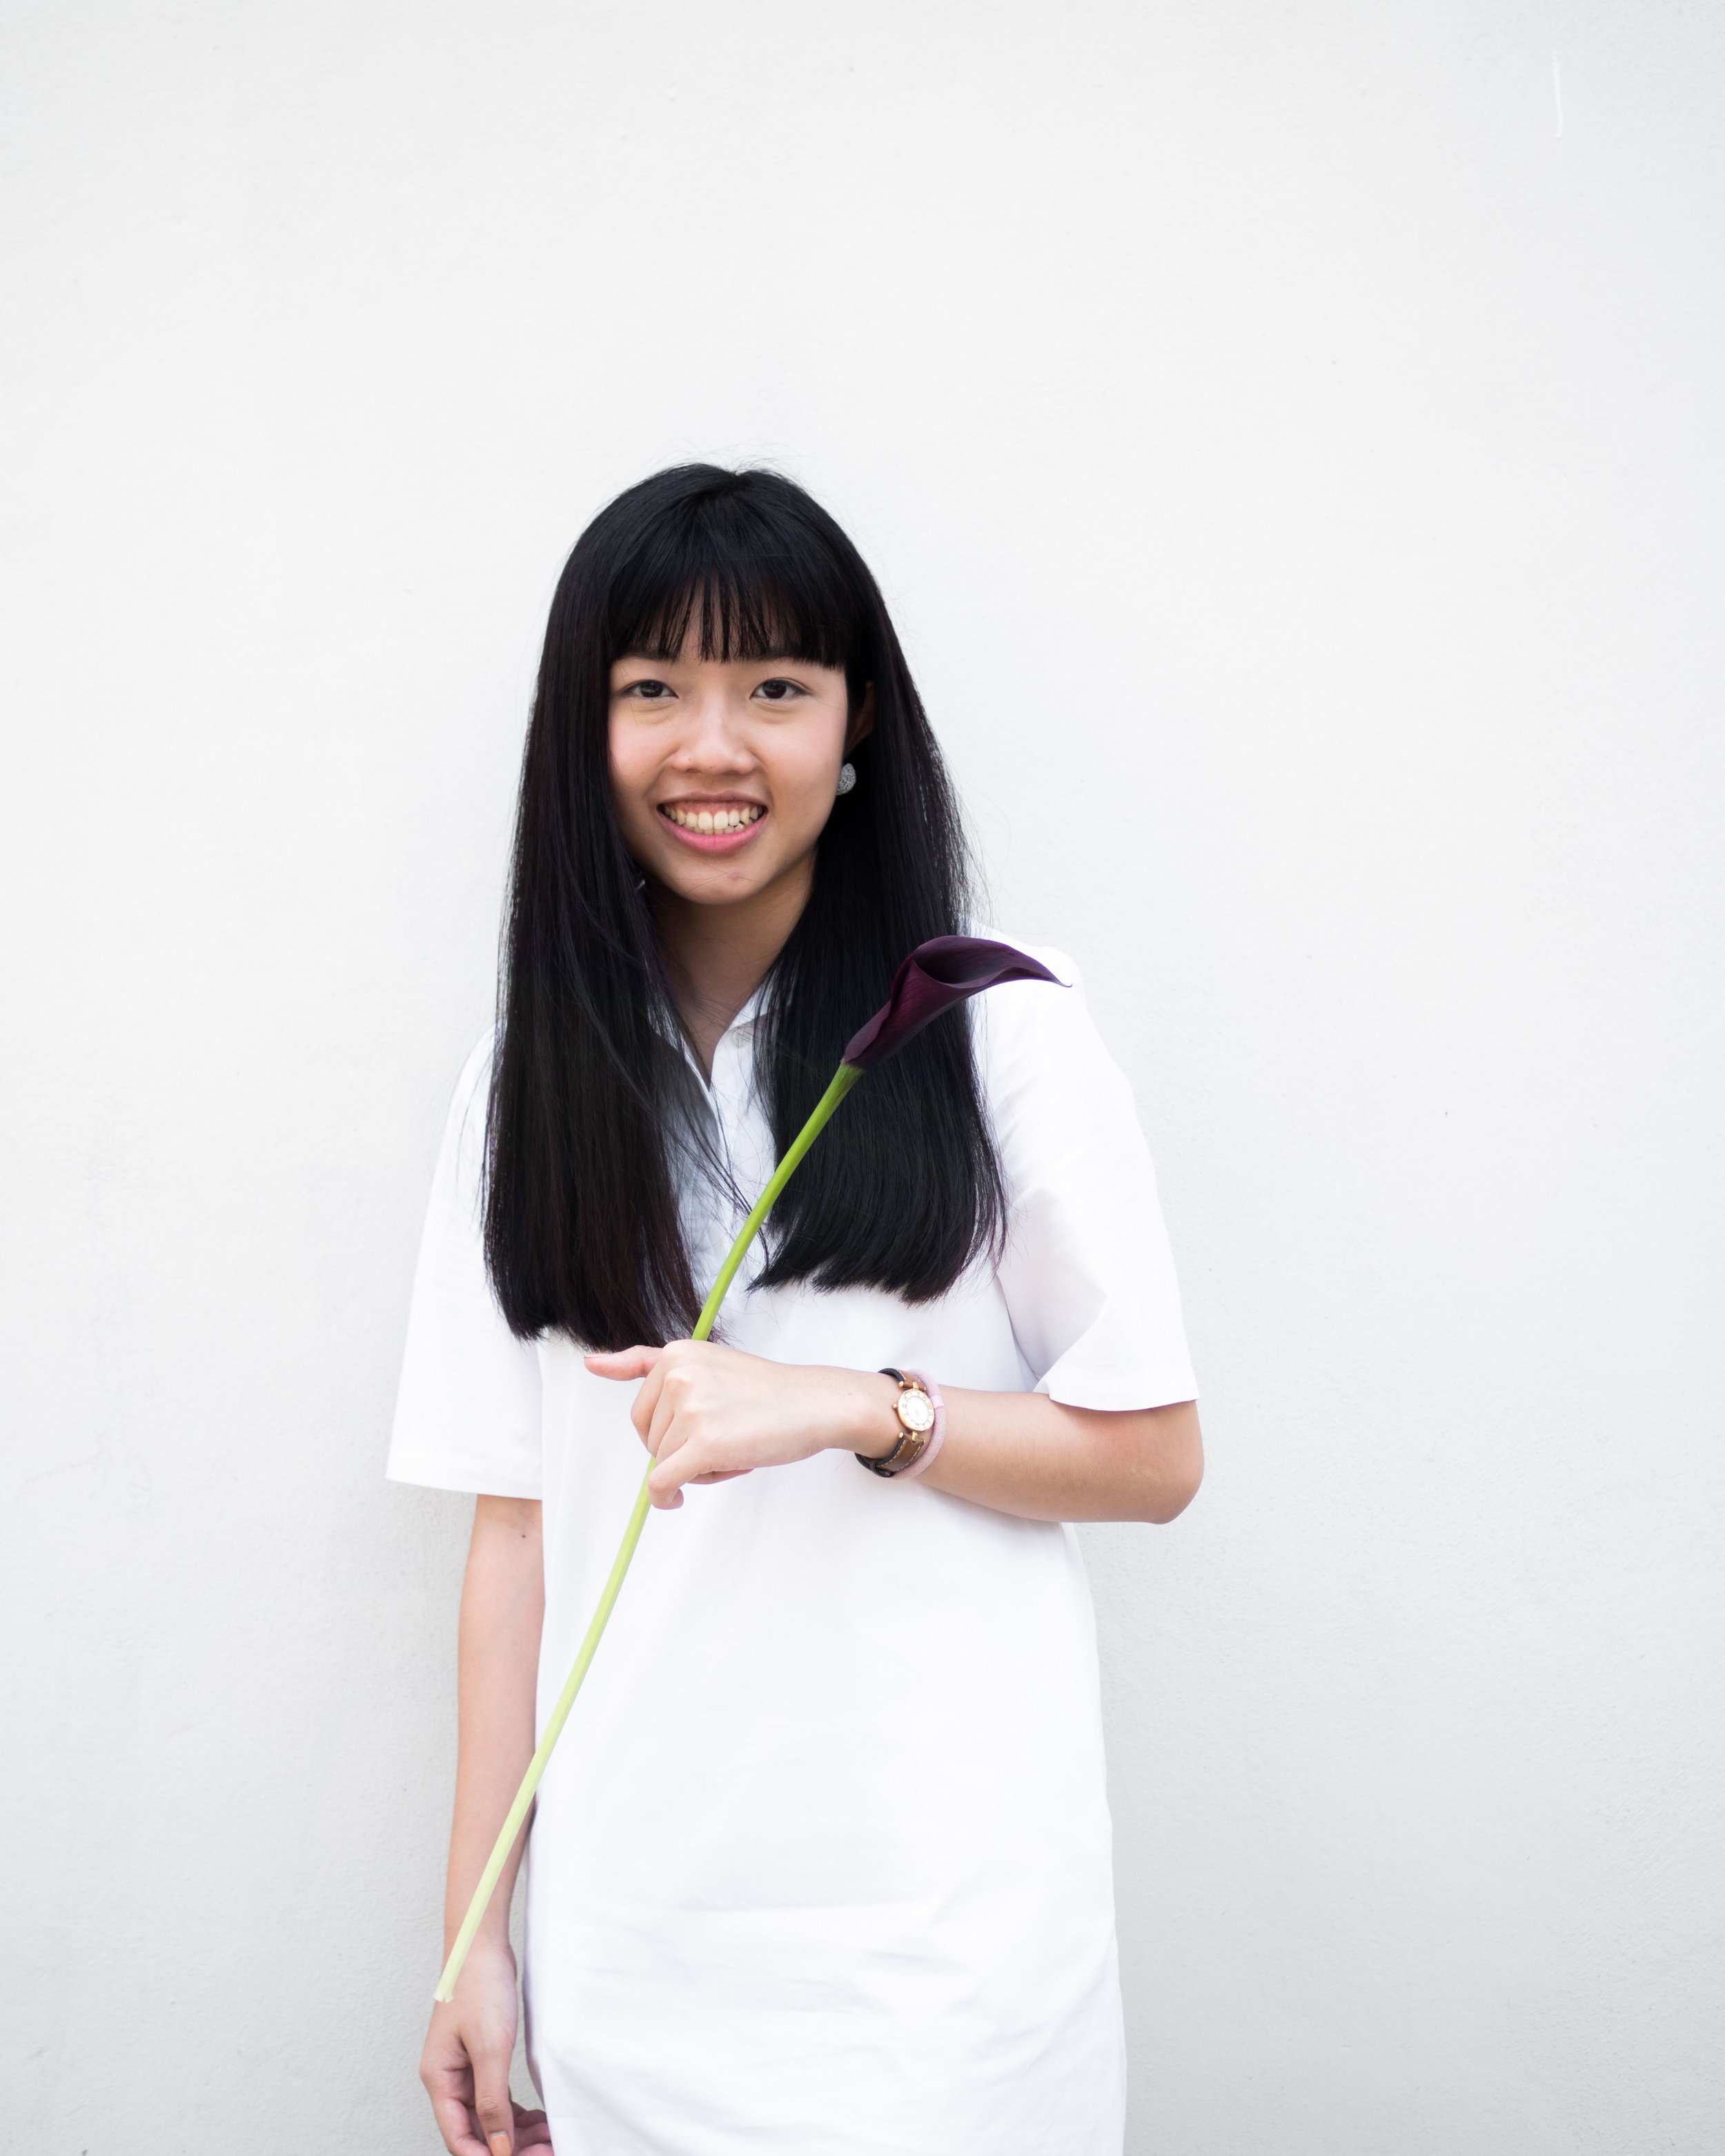 One of our recent addition, Pop graduated with B.Arch in Interior Architecture from Chulalongkorn University. She started her career at PHKA in 2018, being the youngest and enthusiastic designer of the team. Pop started to handled several projects and events including private event, commercial installation, and installation art.  manasnan@phkastudio.com